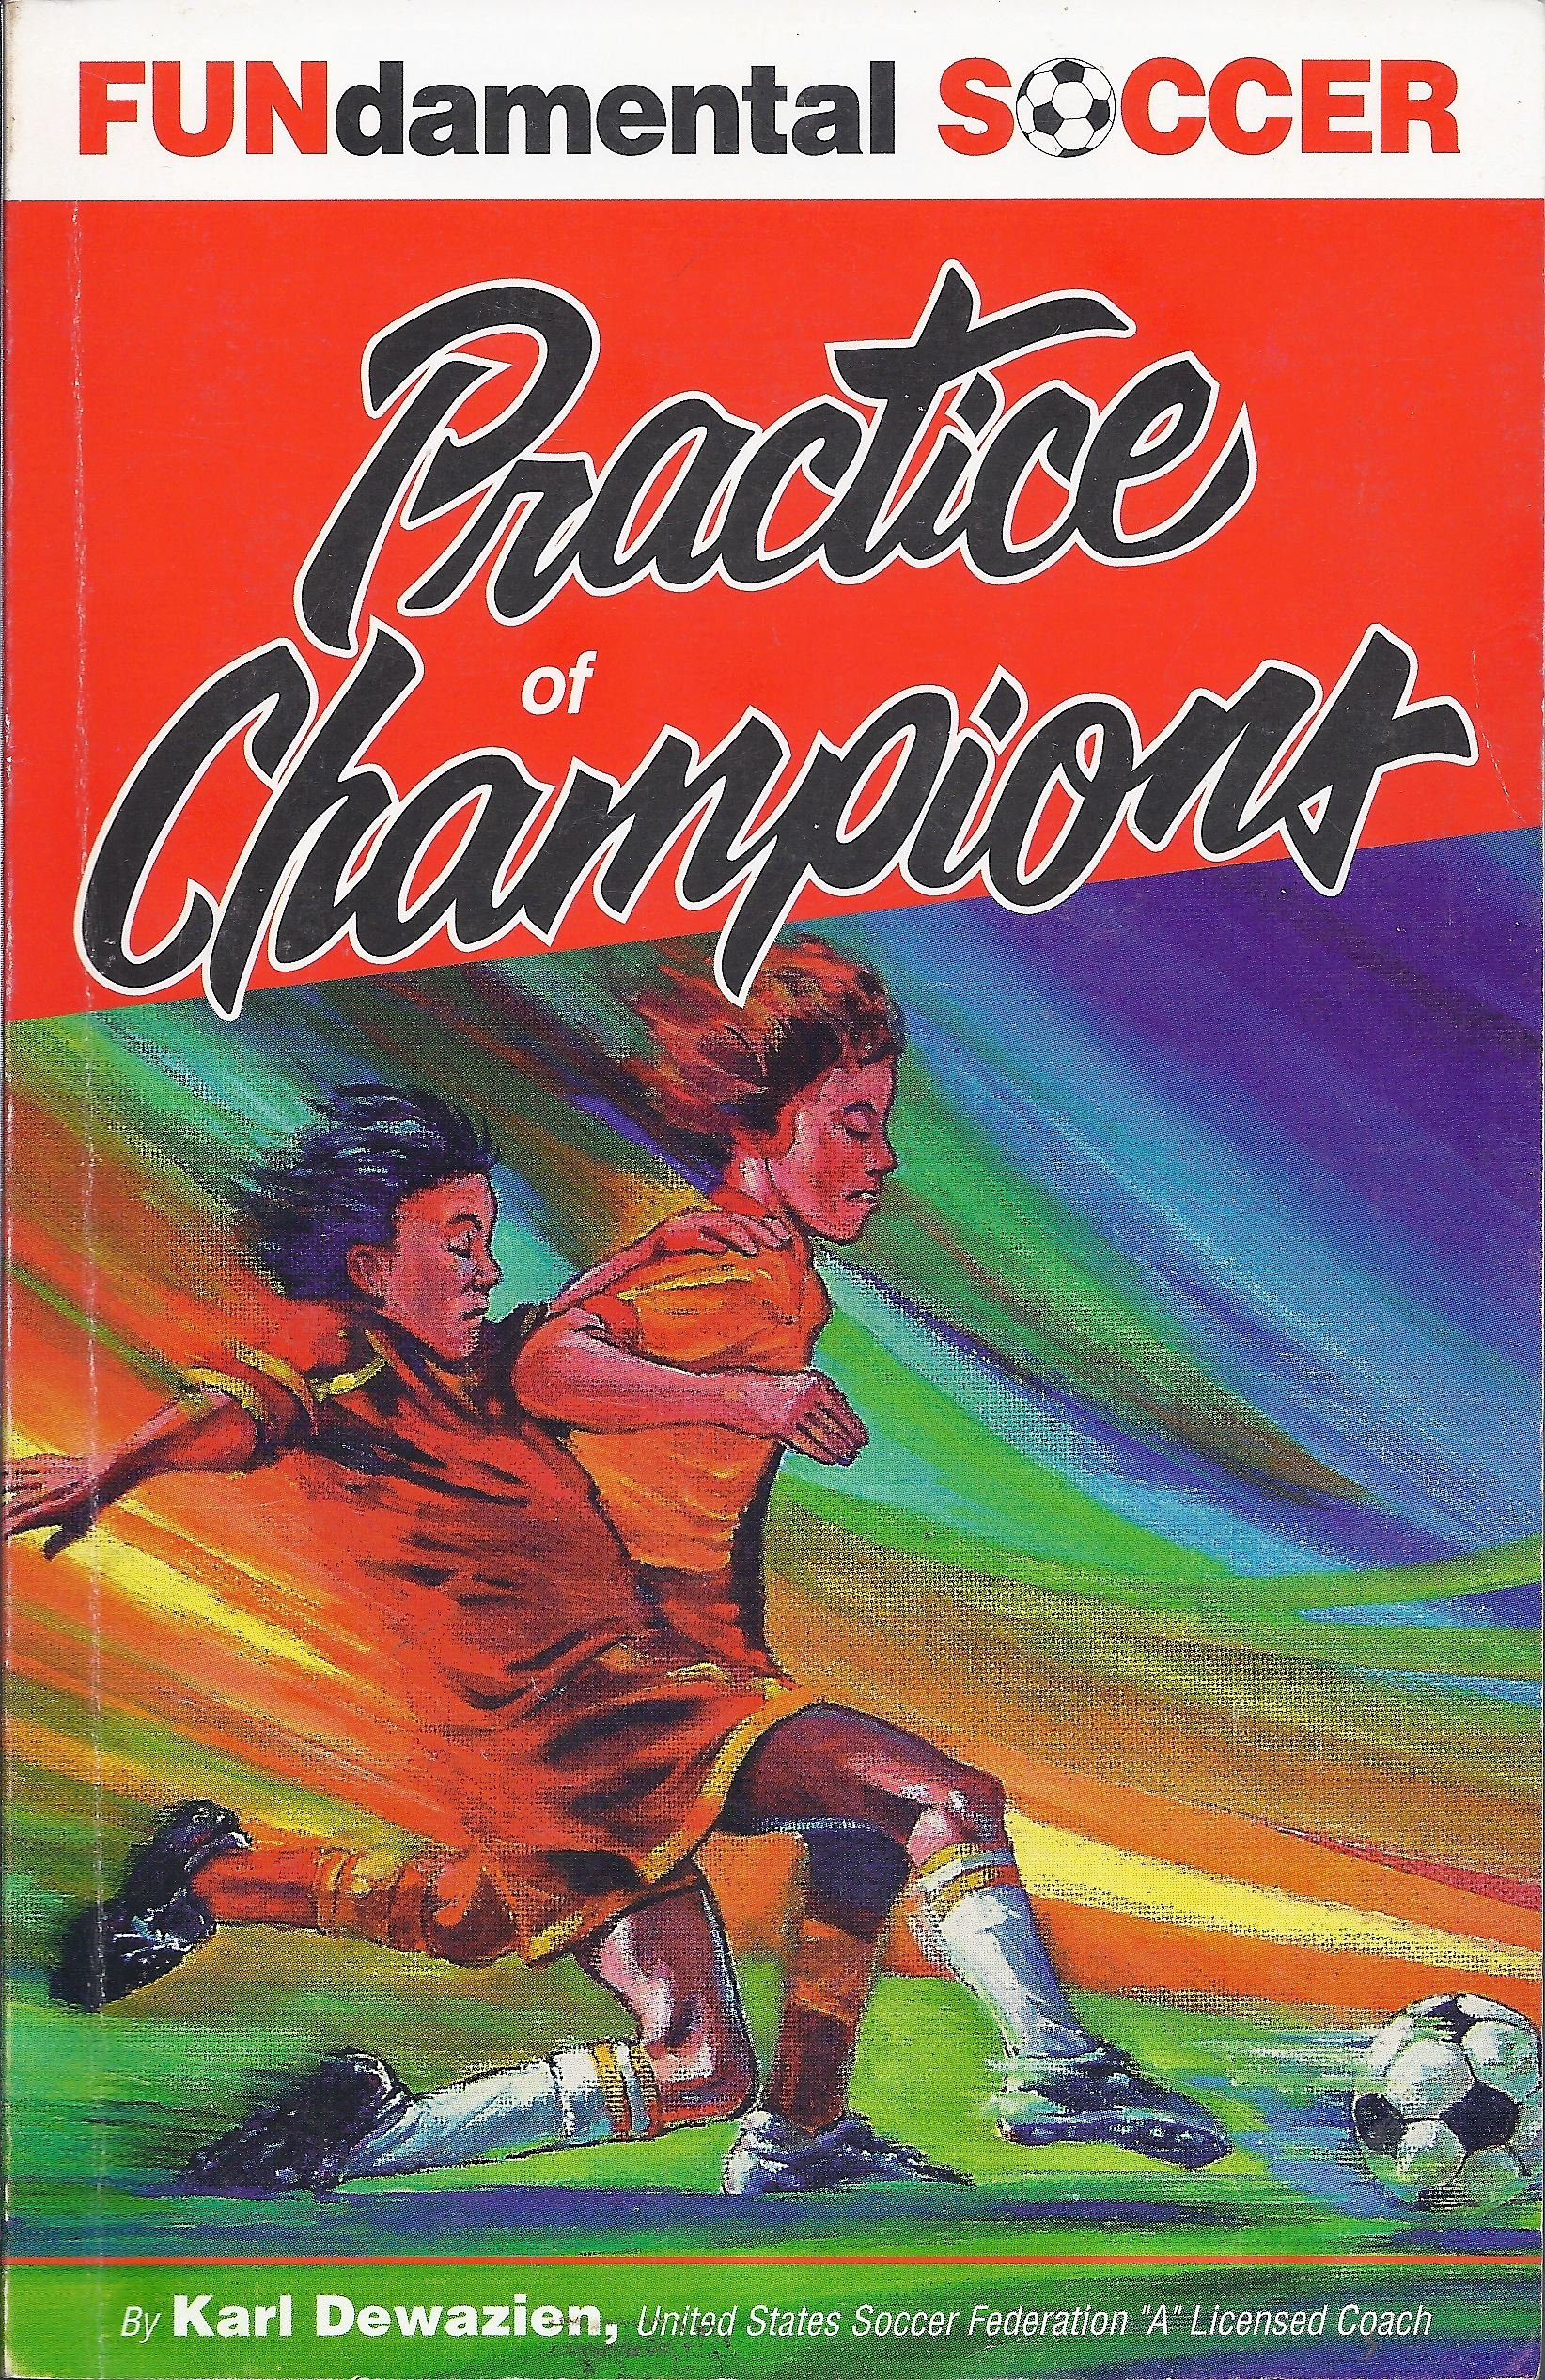 FUNdamental Soccer: Practice of Champions